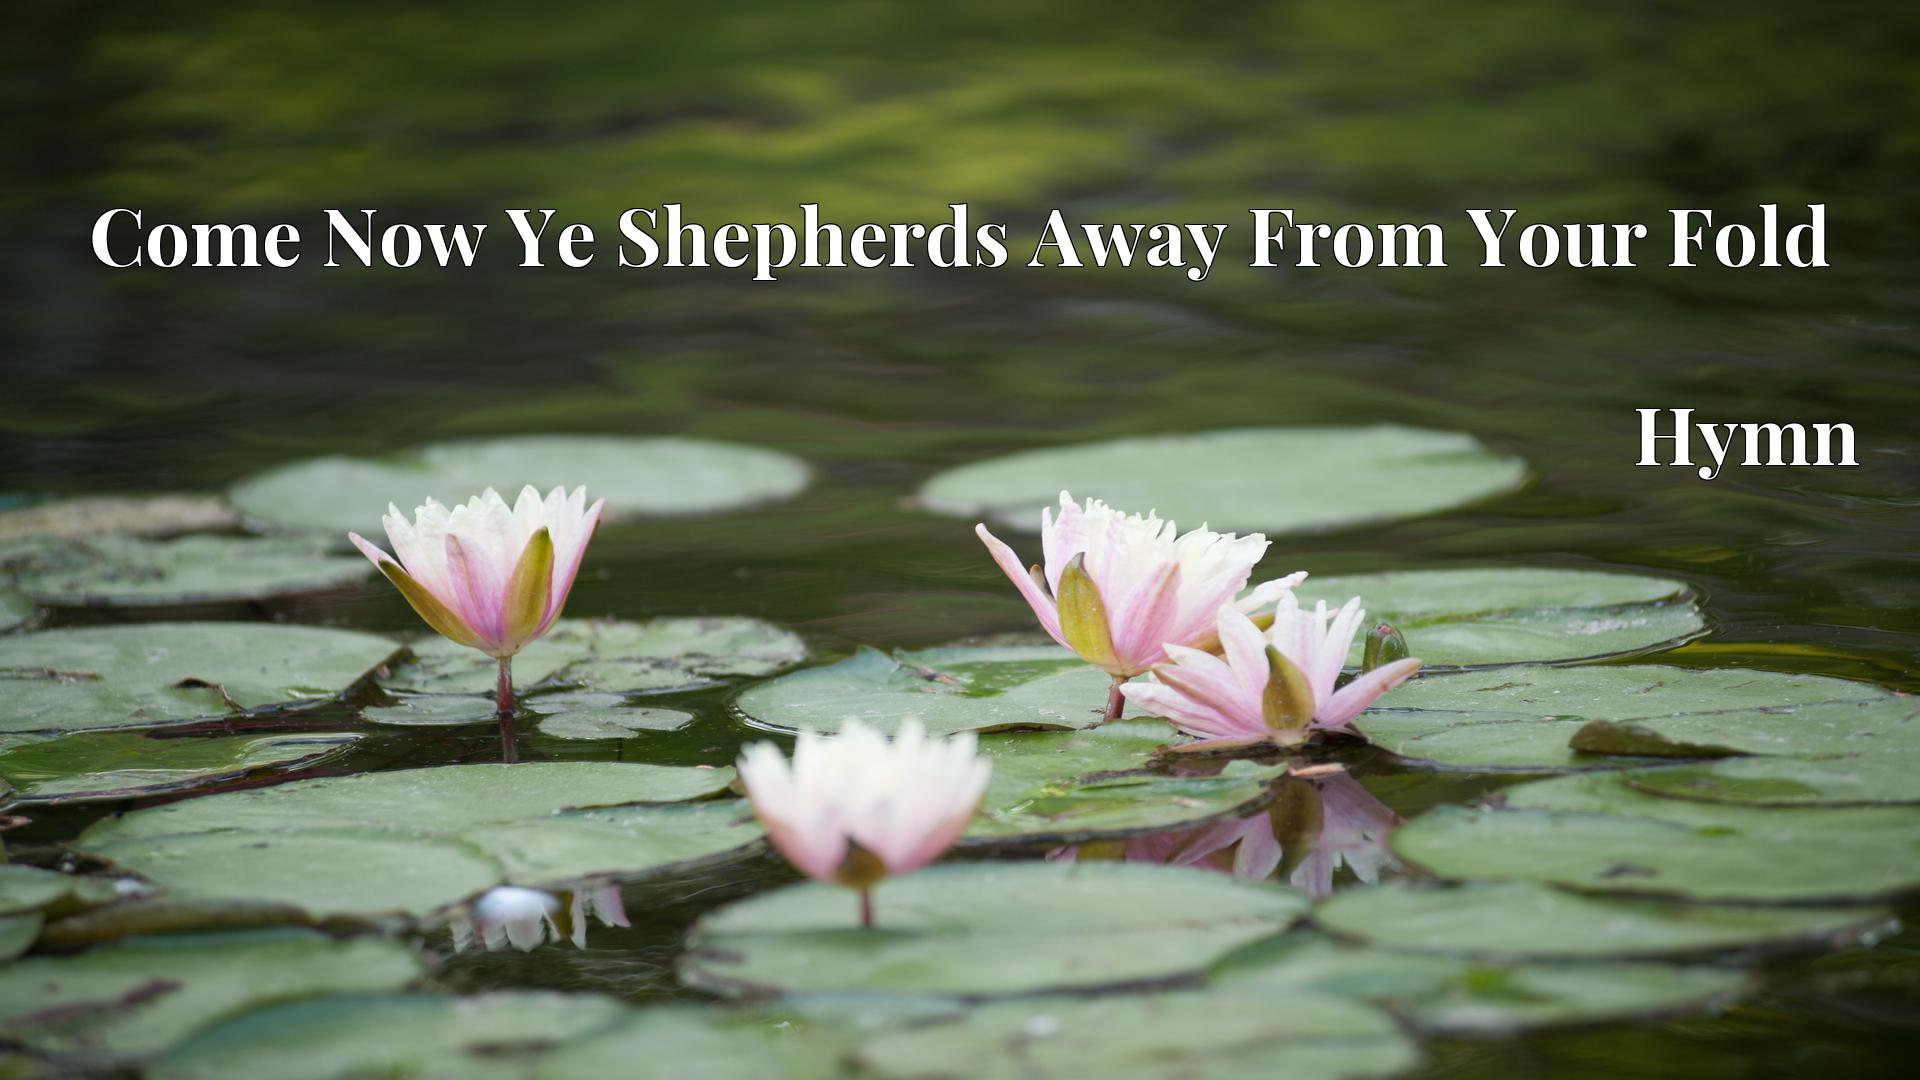 Come Now Ye Shepherds Away From Your Fold - Hymn